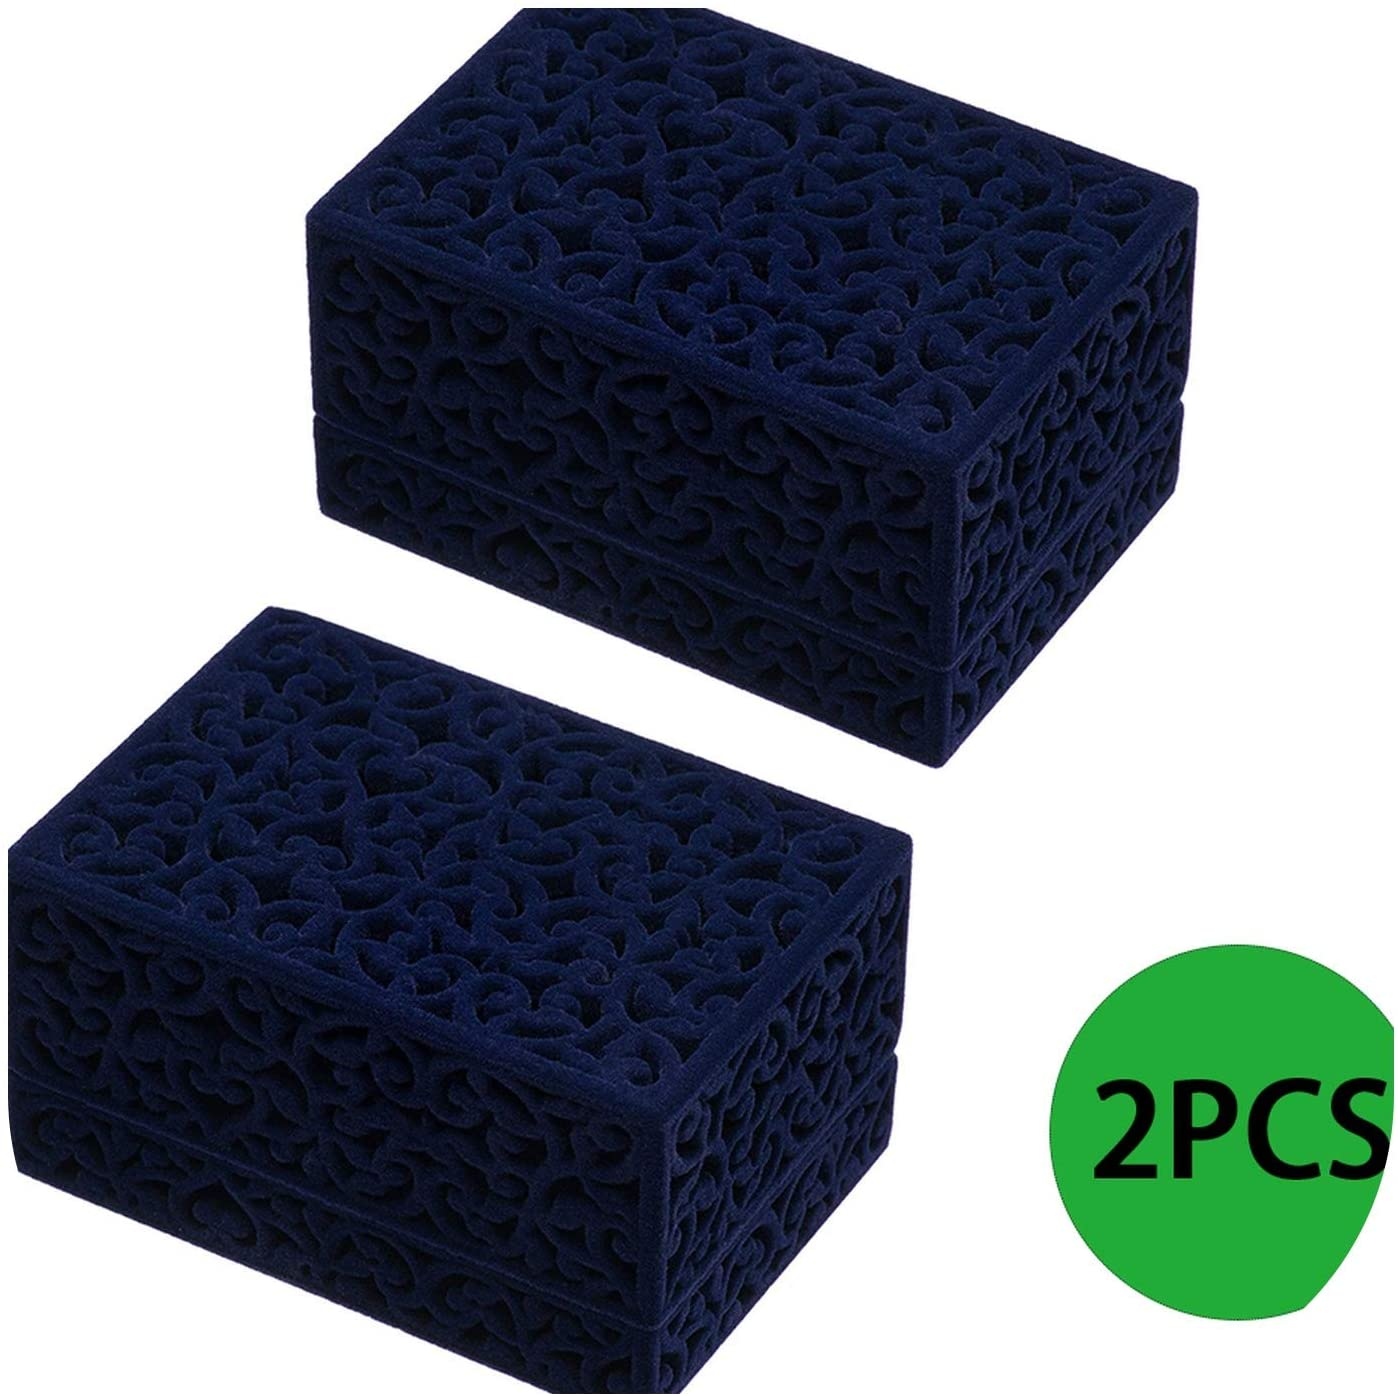 S-D-A 2Pcs Hollow Ring Box Jewelry Box Couple Double Ring Bearer Box Engagement Gift Flocking Plastic Boxs,Blue